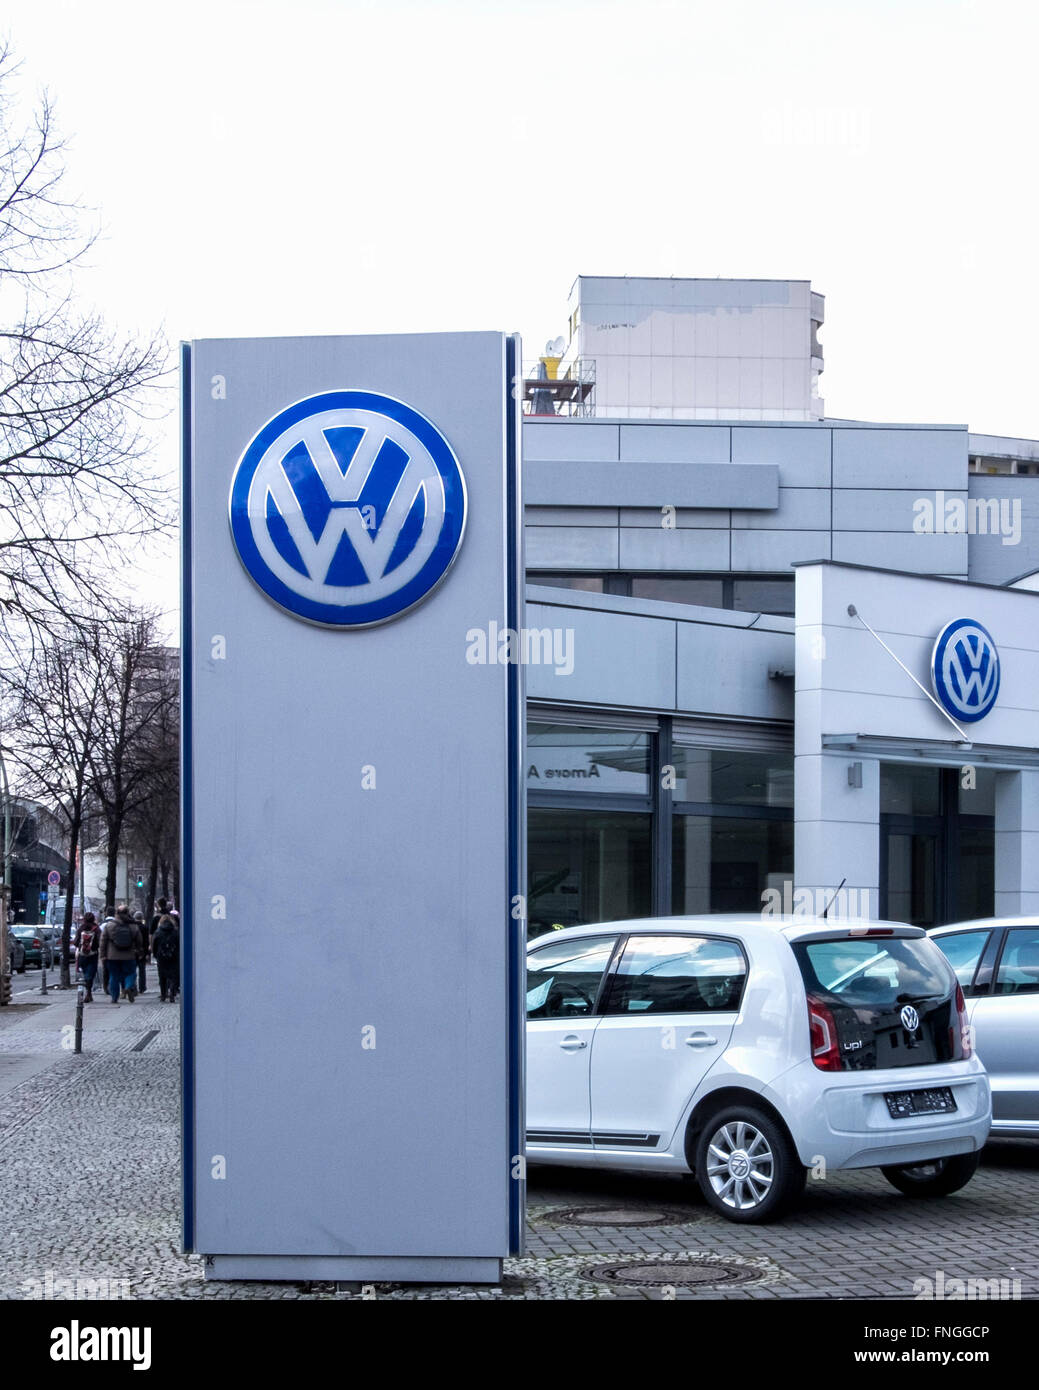 Volkswagen dealership exterior with cars and logo, Berlin Stock Photo